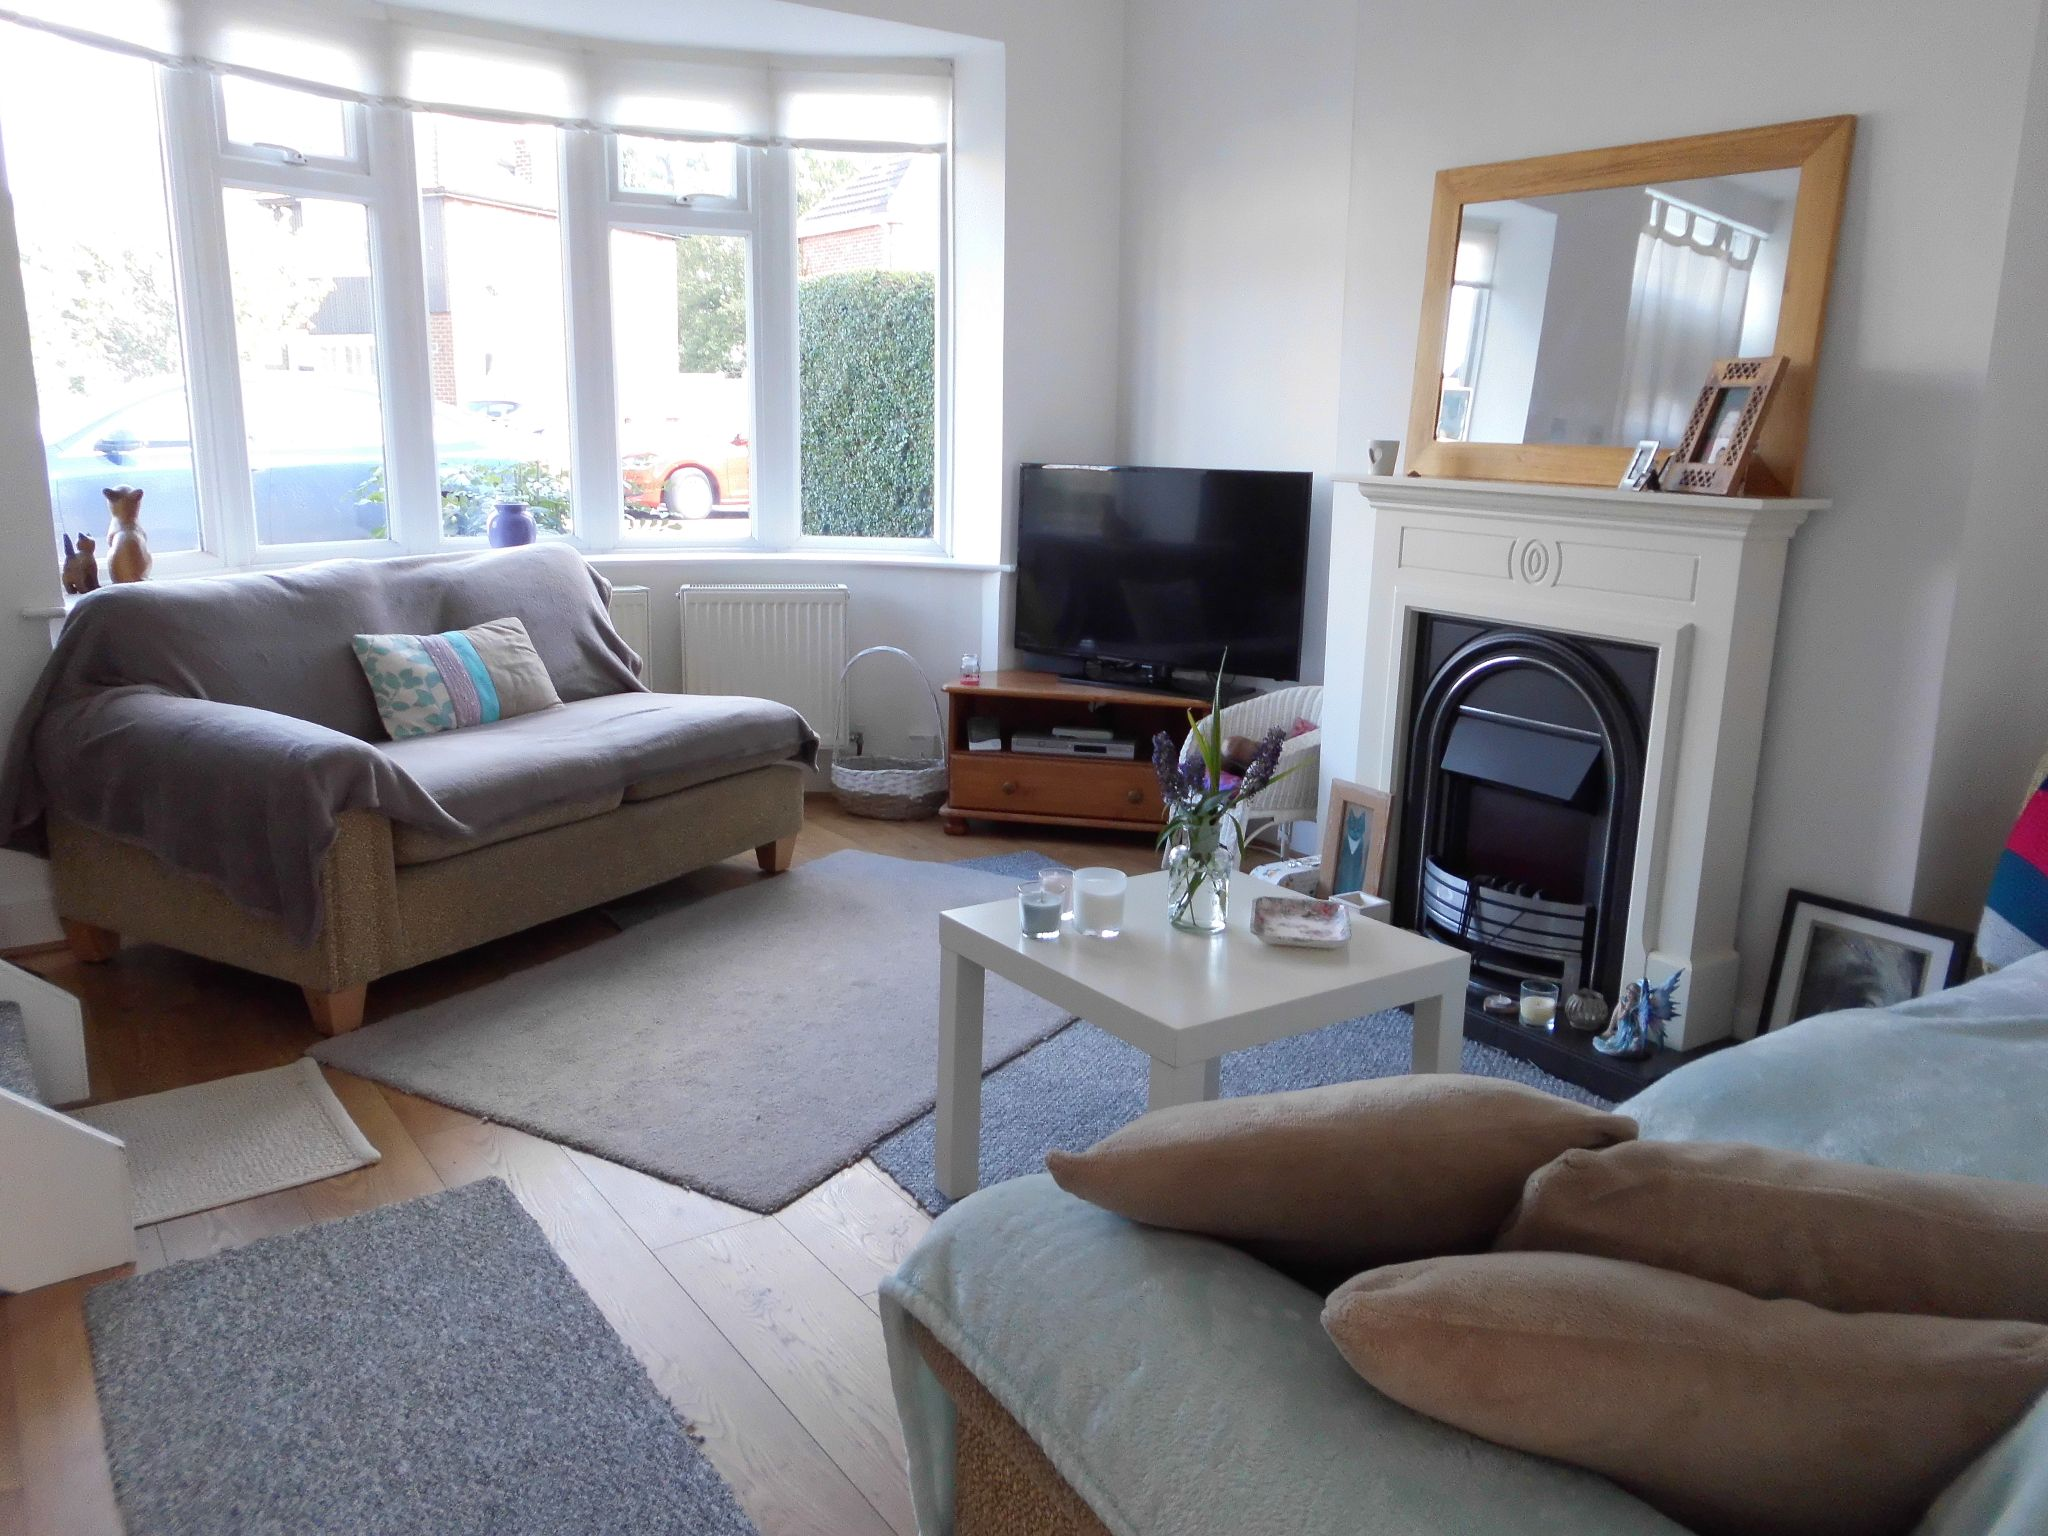 3 bedroom town house SSTC in Leicester - Photograph 2.